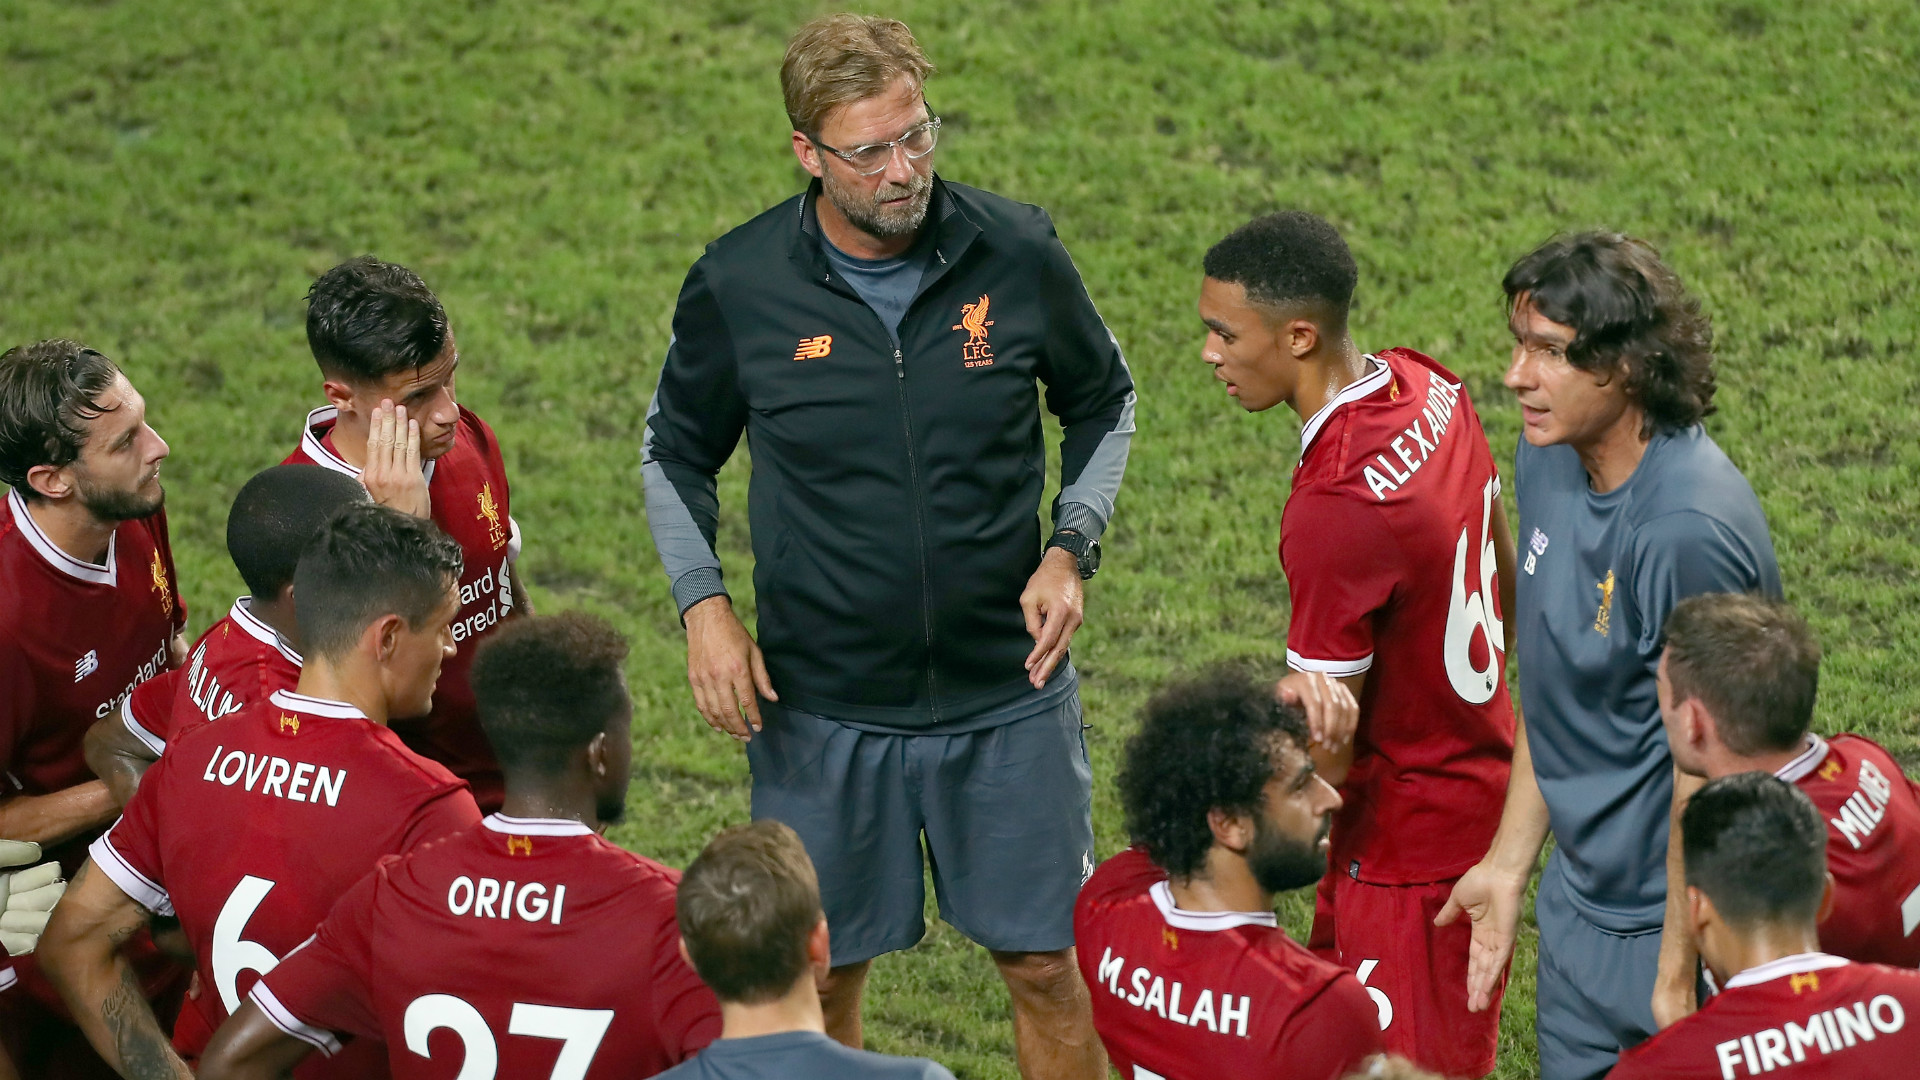 HD Jurgen Klopp Liverpool huddle